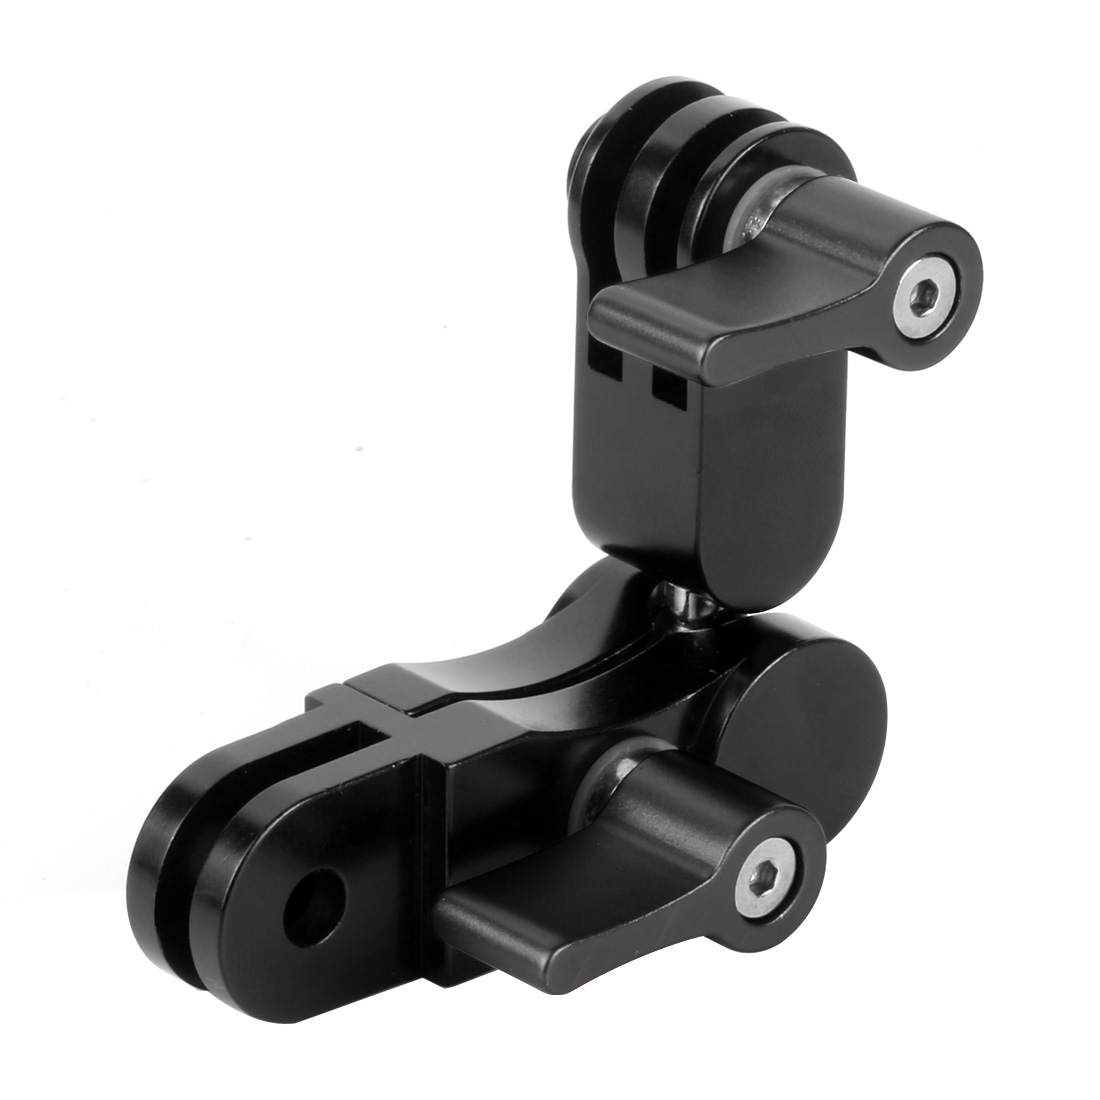 360° Arm Magic Hand Extension Adapter Swivel Joint Helmet Tripod Mount CNC for Gopro Hero 8 7 6 5 for DJI Osmo Action Camera Acc